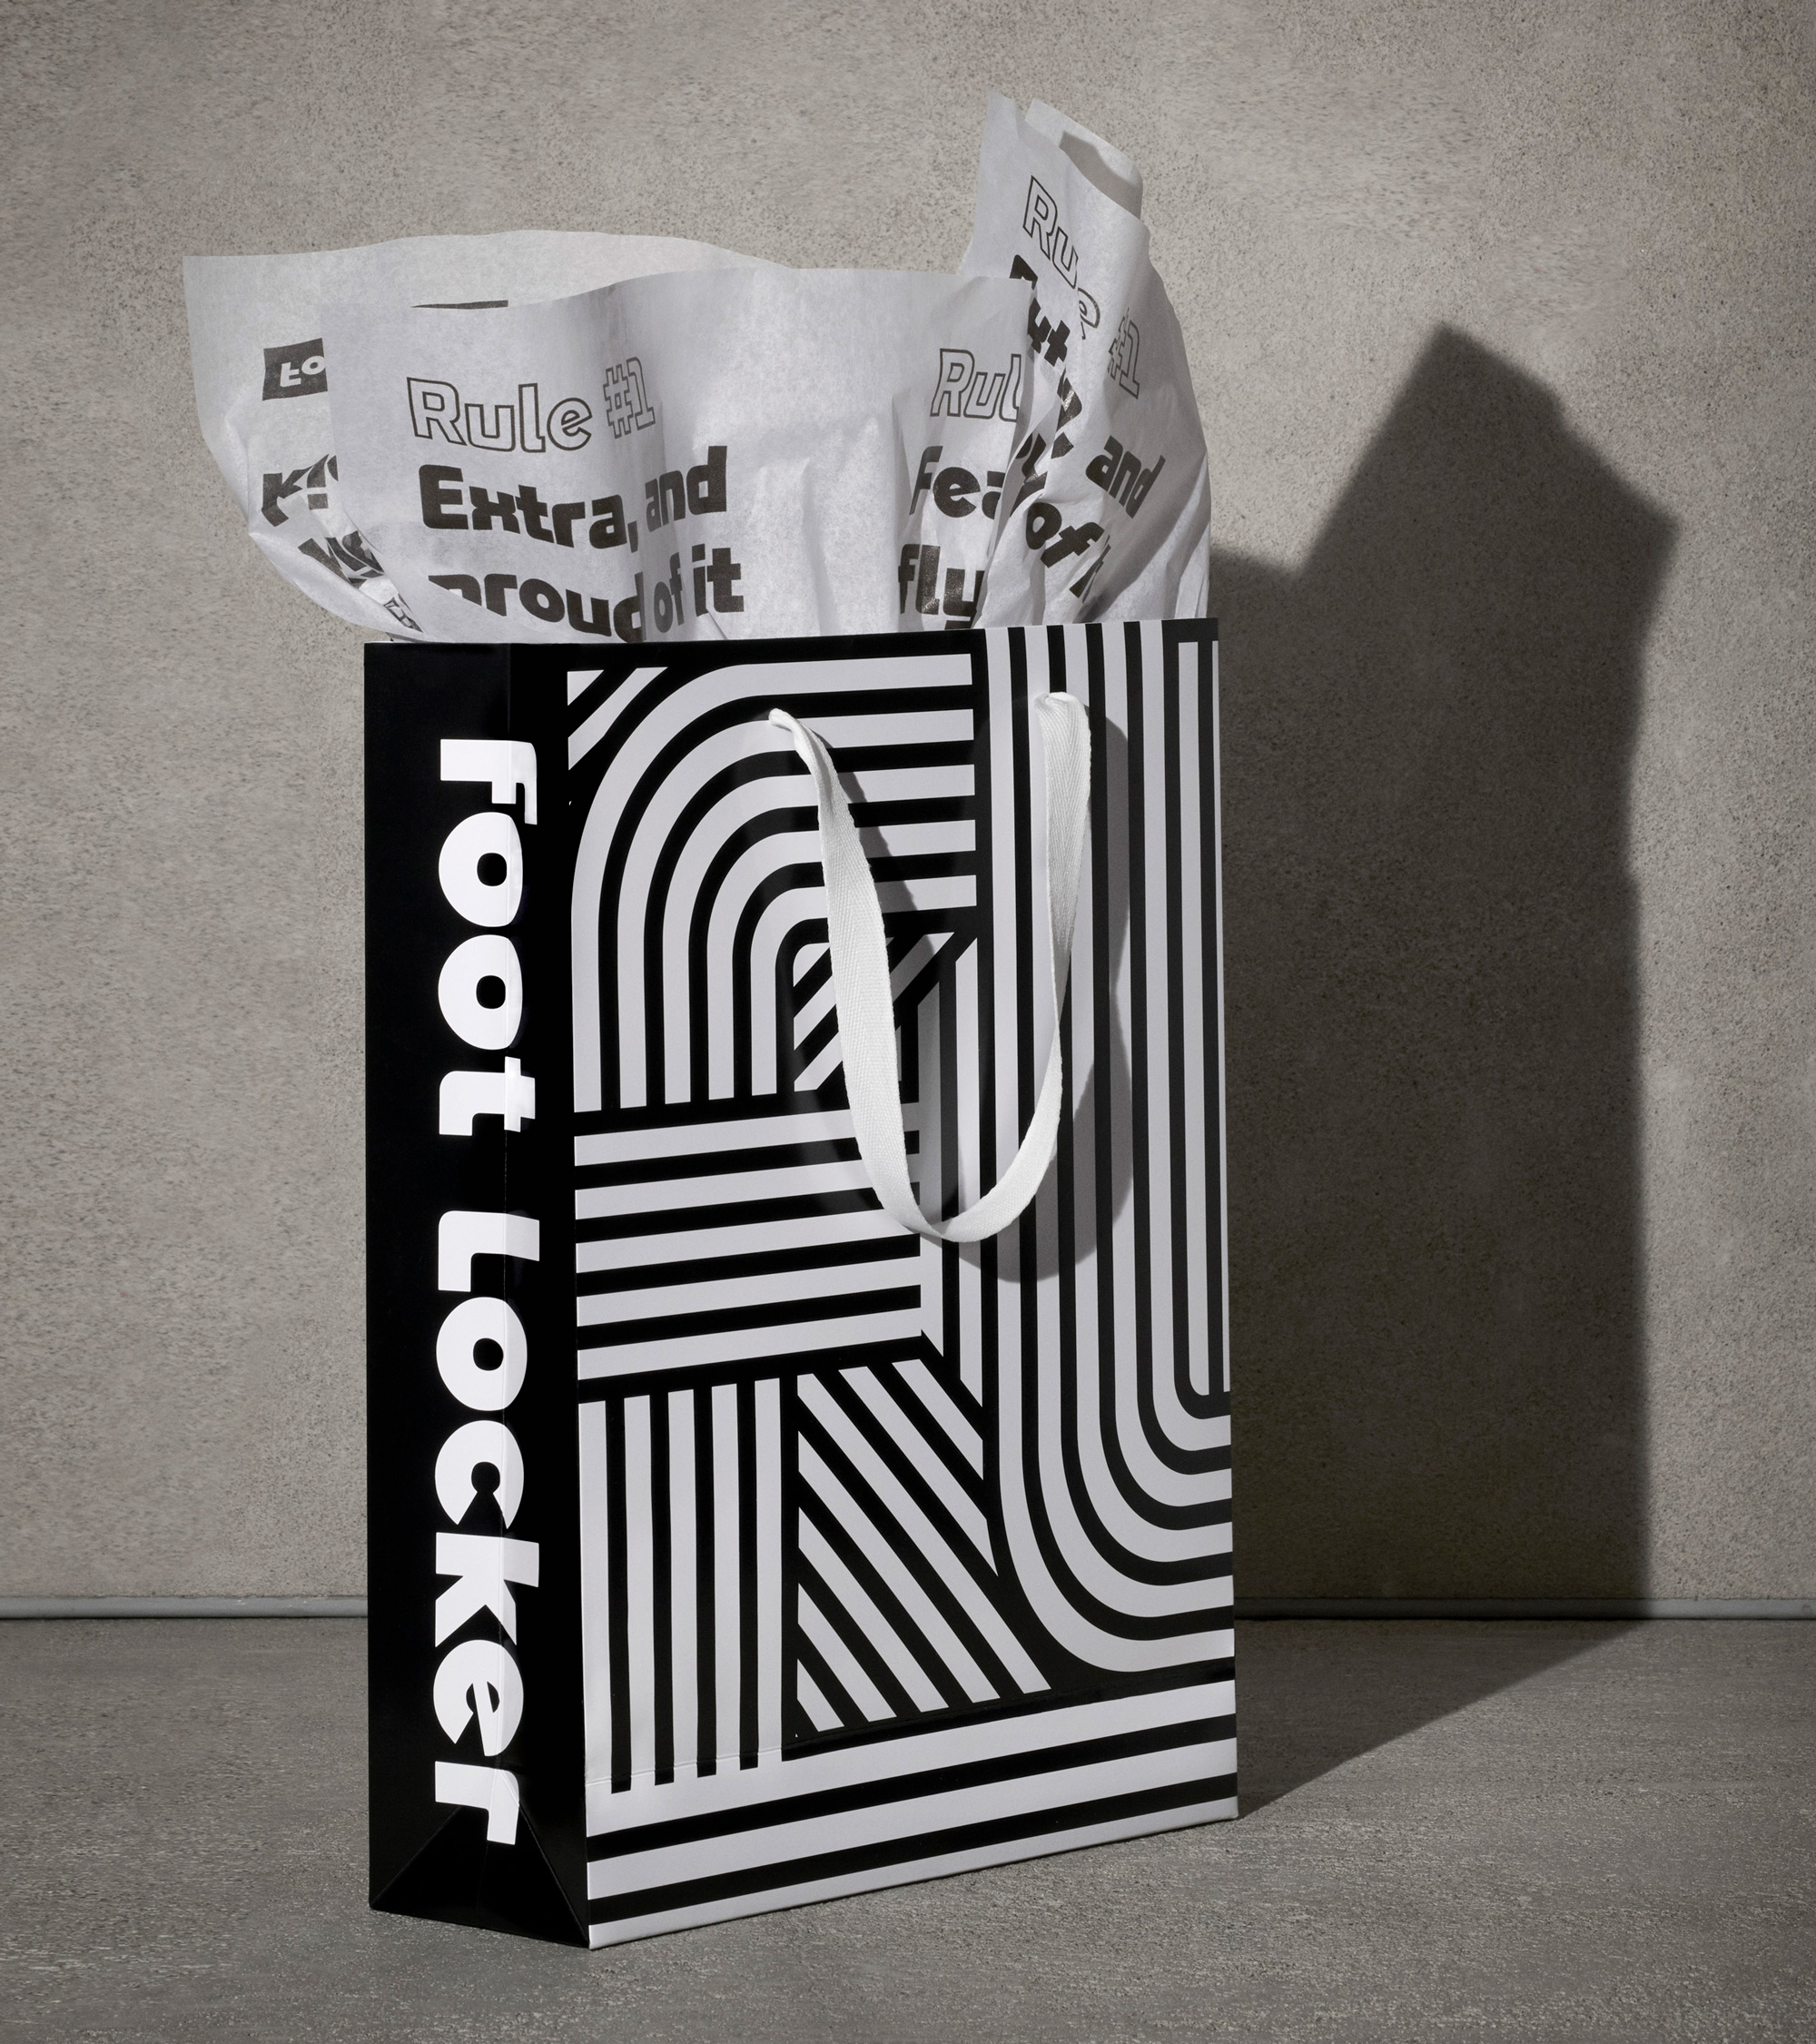 New Logo and Identity for Foot Locker by Jones Knowles Ritchie